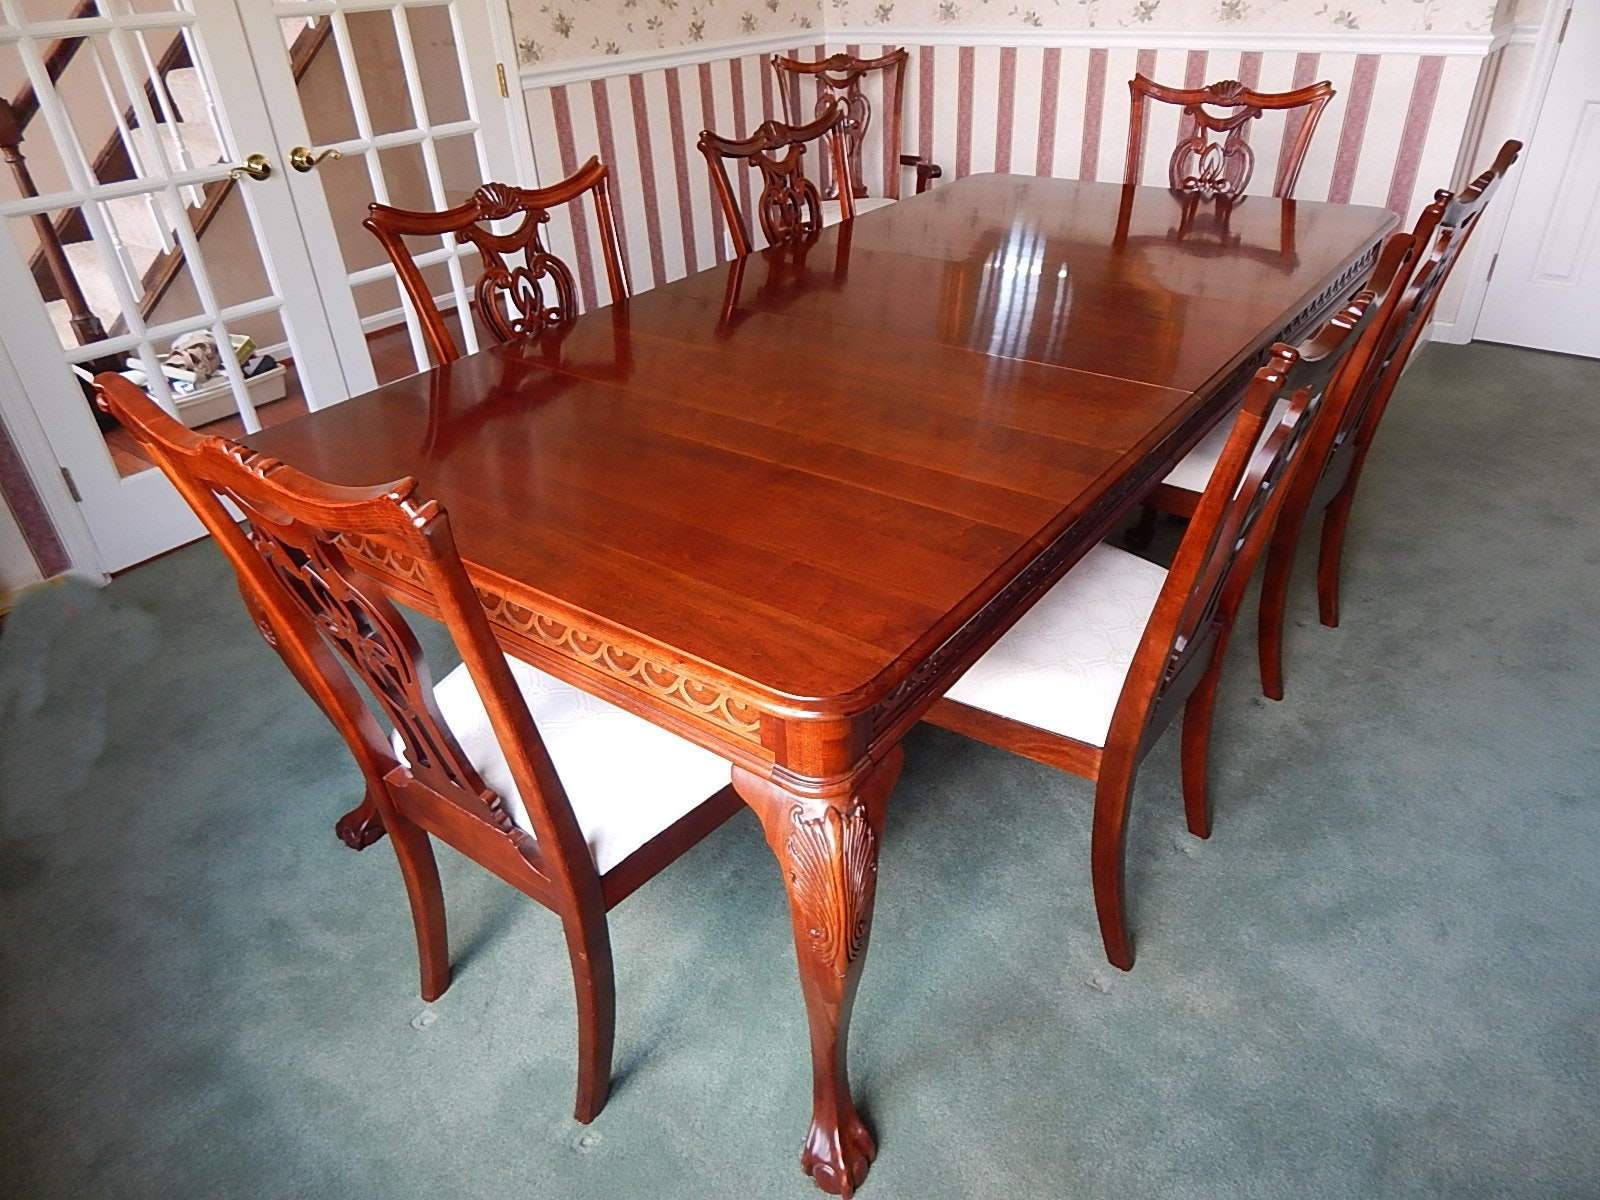 pennsylvania house cherry chippendale style table and chairs ebth rh ebth com Pennsylvania House Cherry Bedroom pa house cherry dining room set